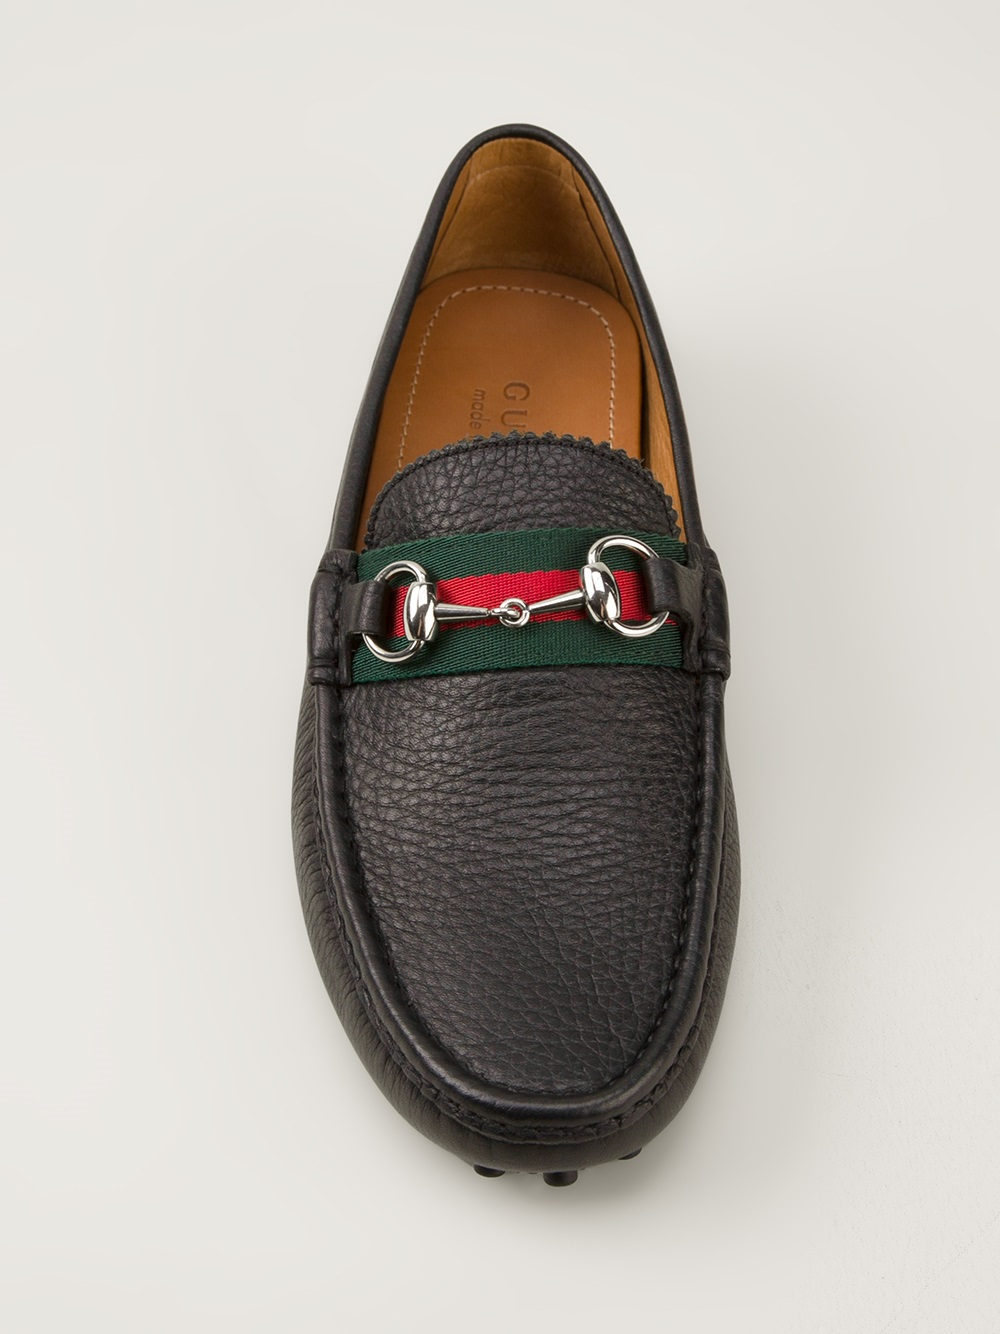 Mens Reef Boat Shoes